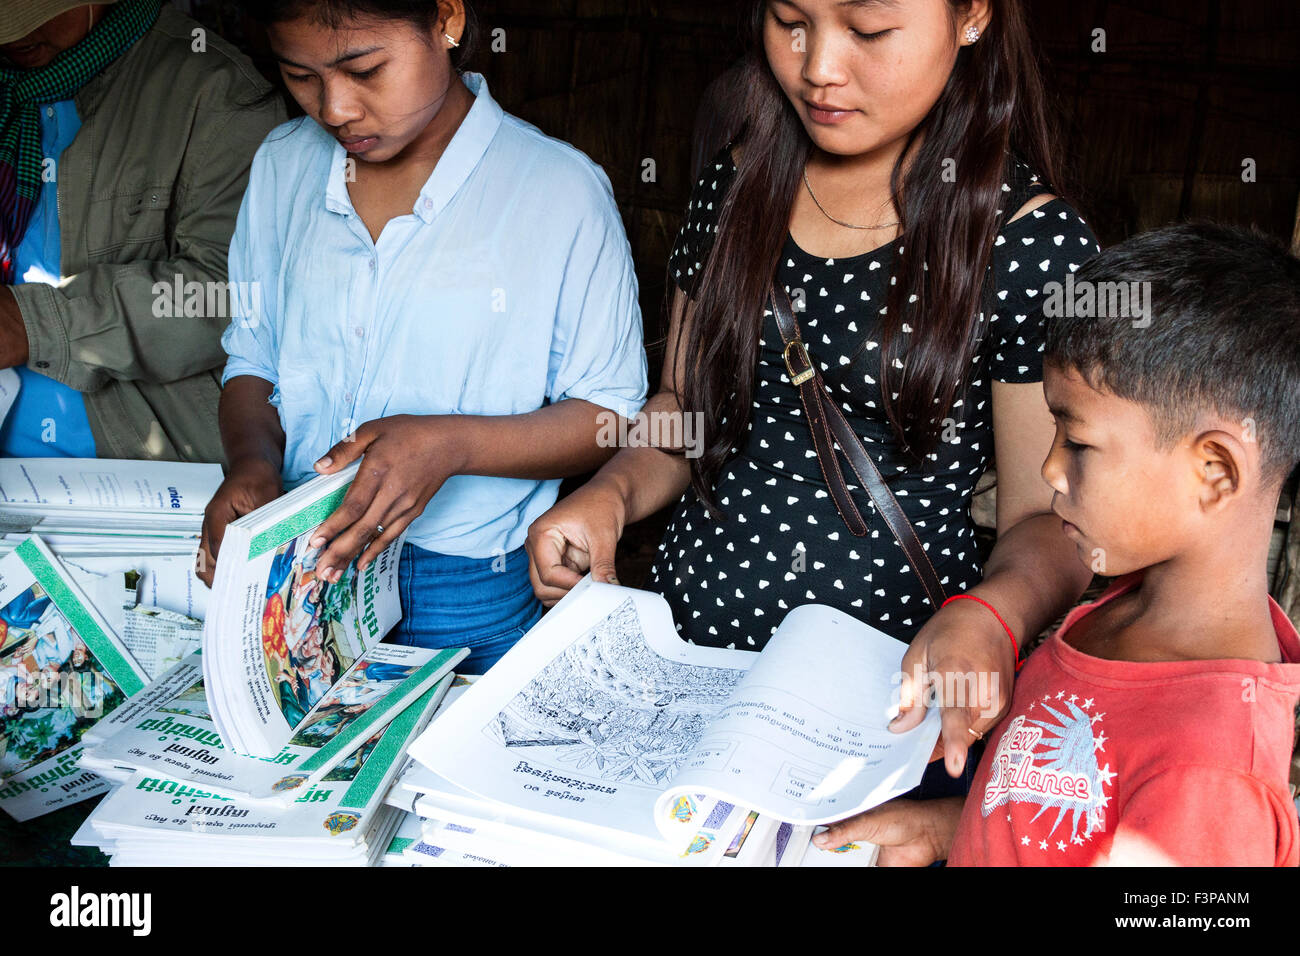 A curious boy looking at new textbooks in Cambodia, Asia. - Stock Image